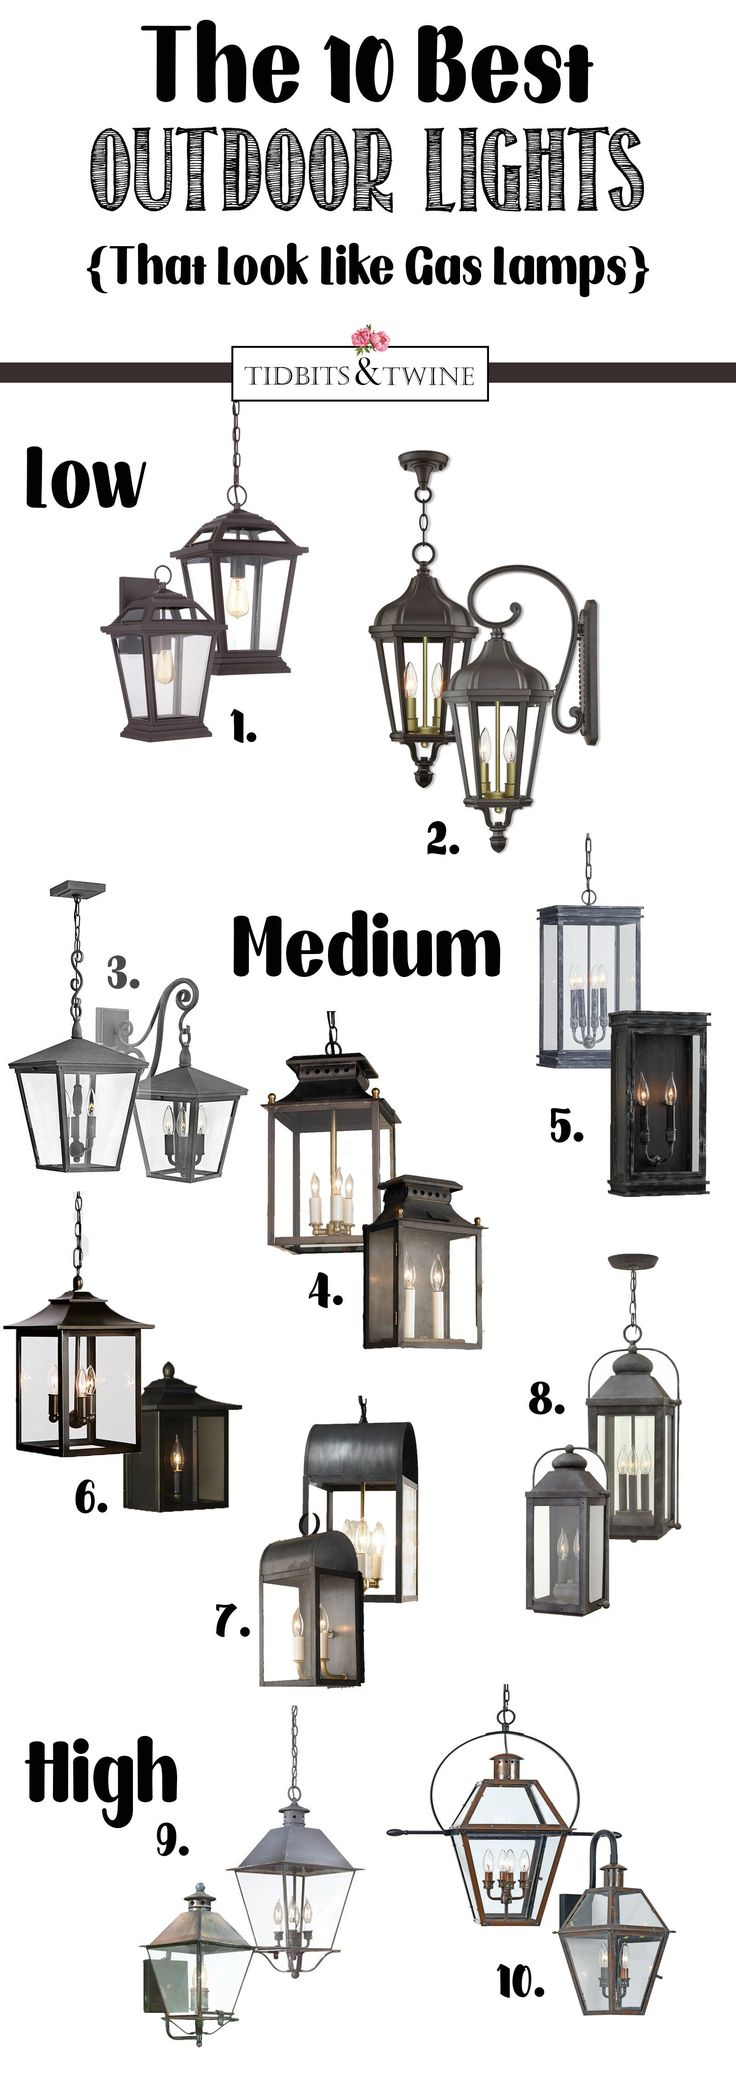 The BEST Outdoor Hanging Lights and Sconces that look like gas lamps, but are electric!